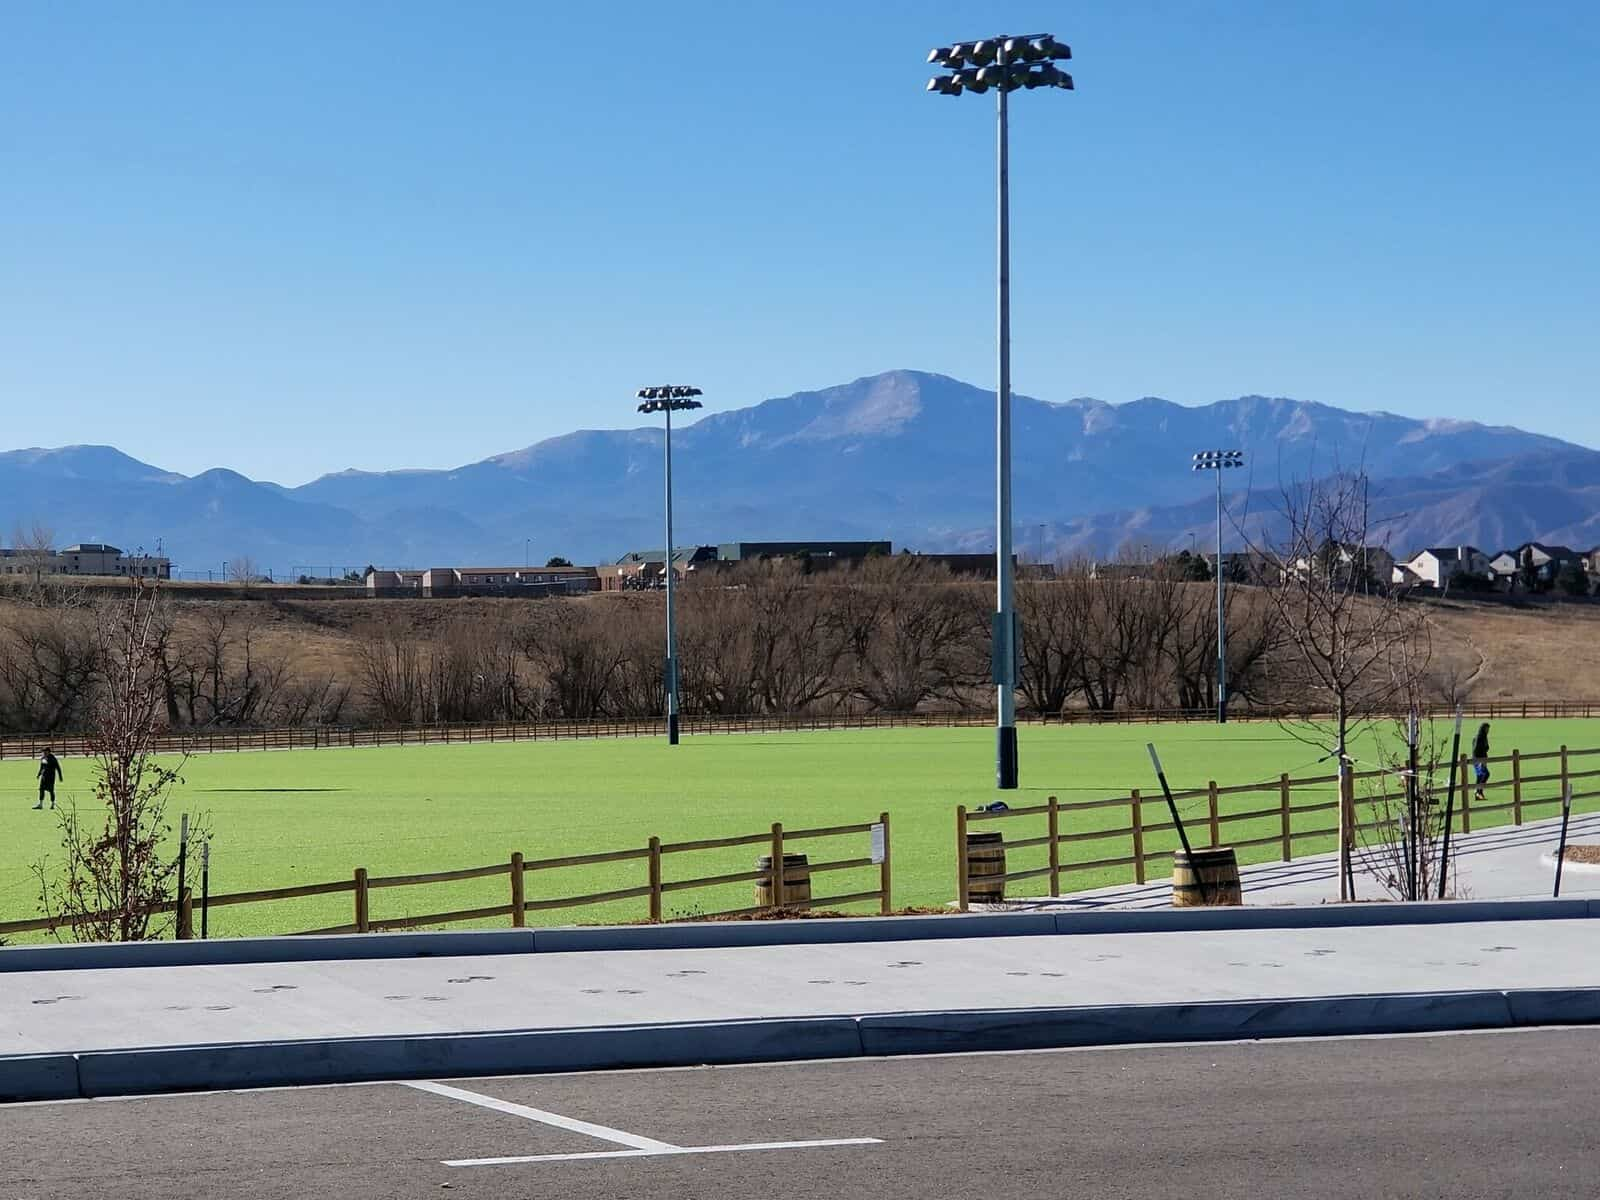 Venezia Park has Great Views, Playing Fields, and Tennis Courts